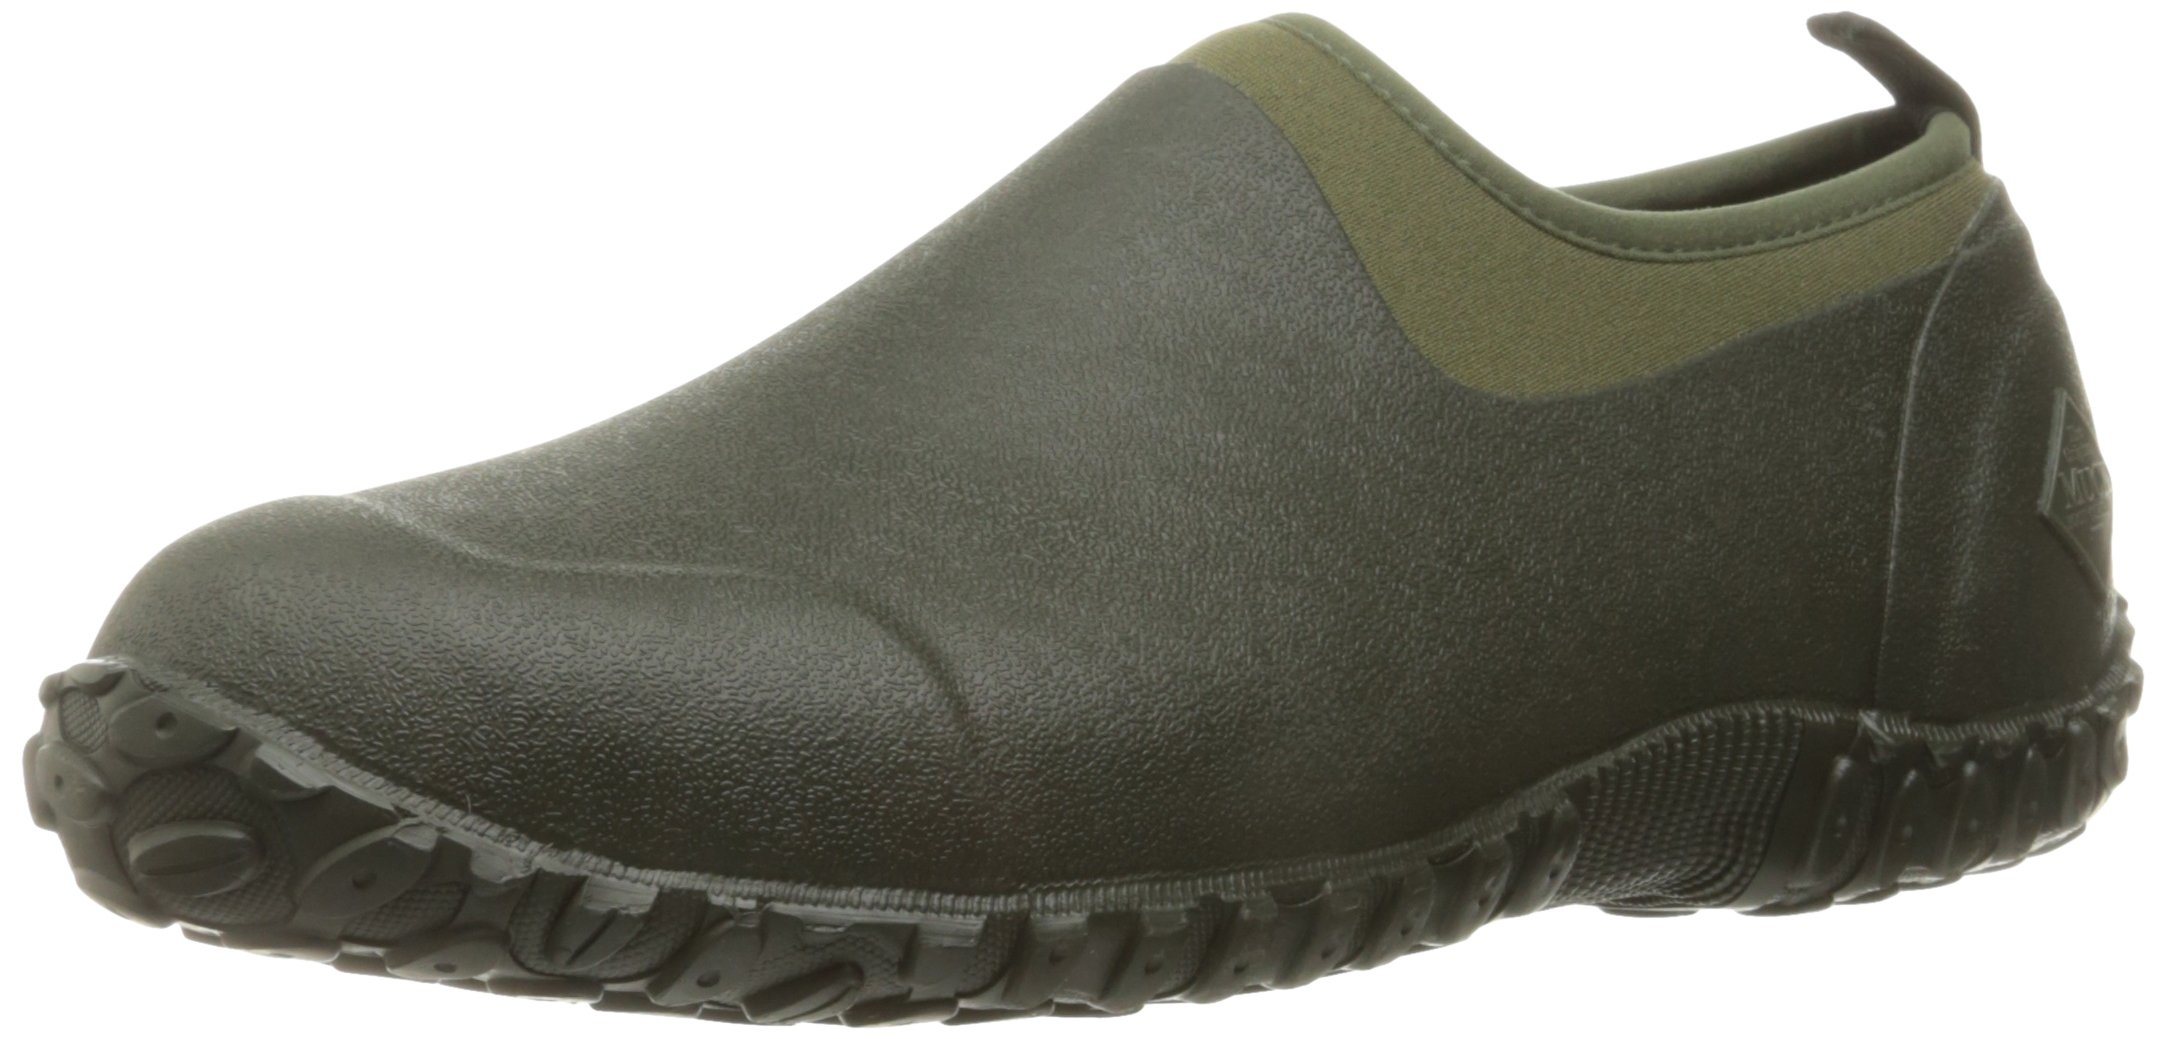 Muckster ll Men's Rubber Garden Shoes,Moss/Green,14 US/14-14.5 M US by Muck Boot